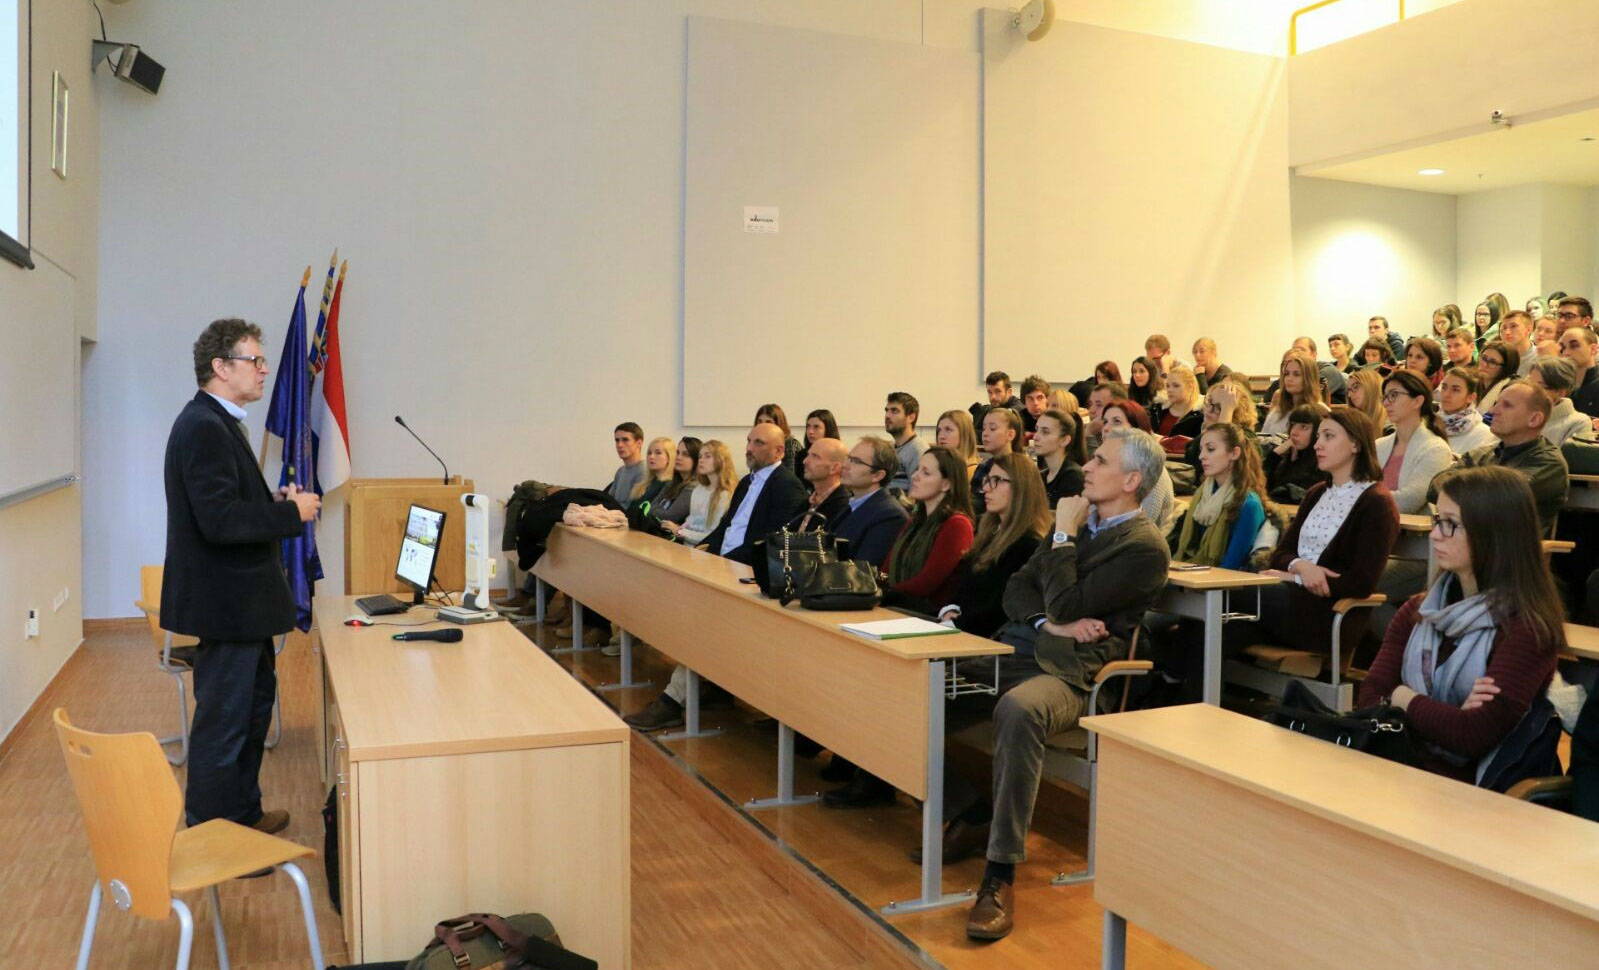 The lecture on rewilding given by Dr. Paul Jepson at the University of Zagreb last December typifies Rewilding Europe's efforts to reach out to European students.